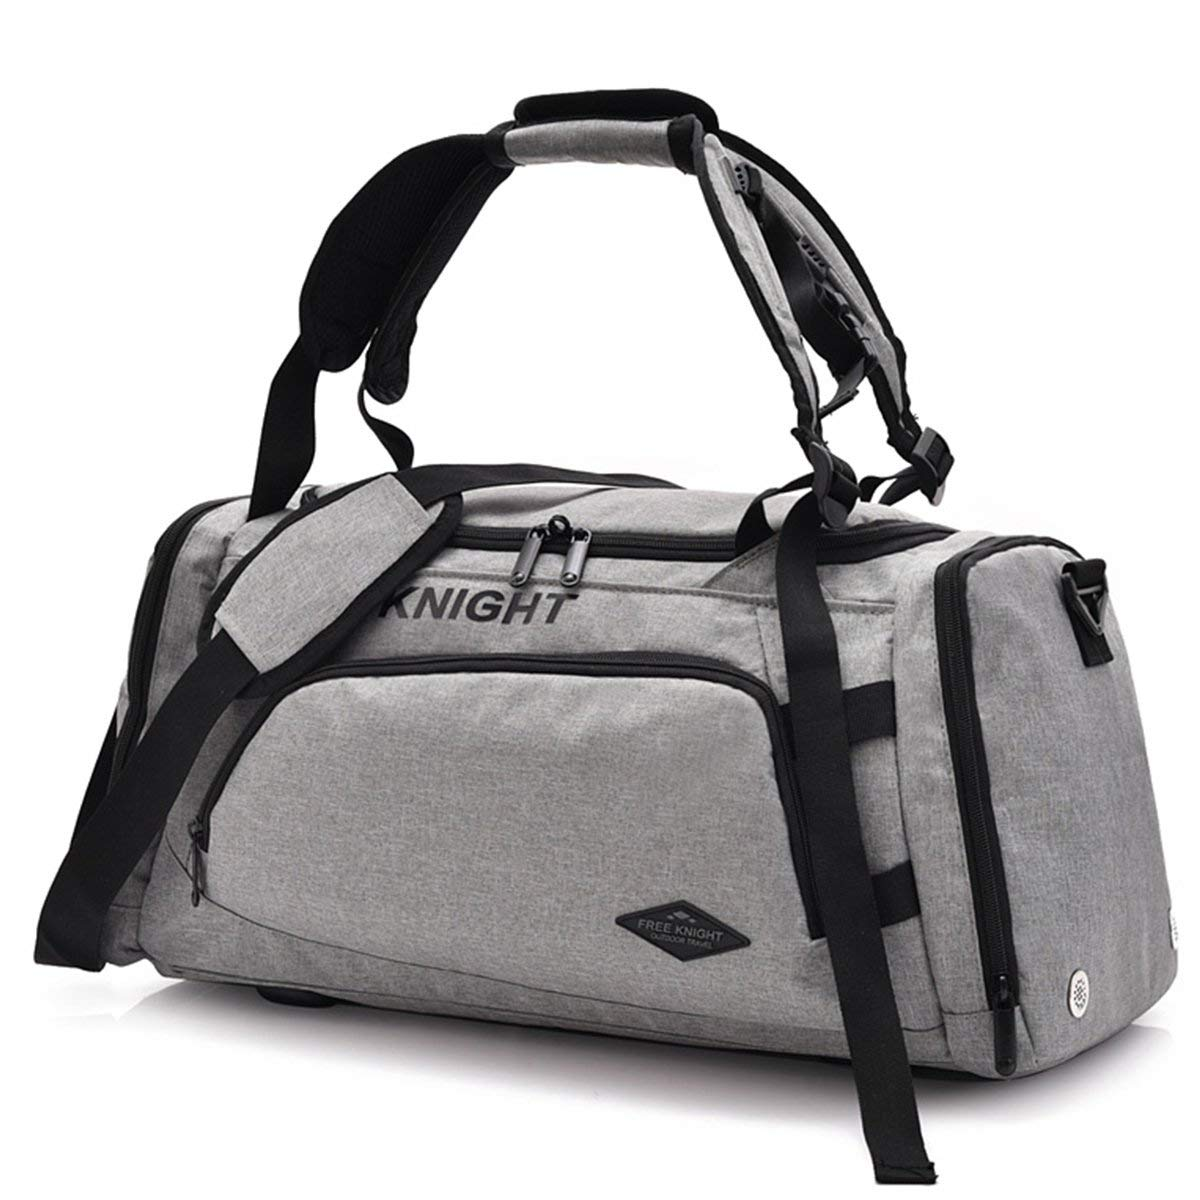 26e60090e2e844 Get Quotations · Sports Gym Bag with Shoes Compartment Travel Duffel Bag  for Men and Women